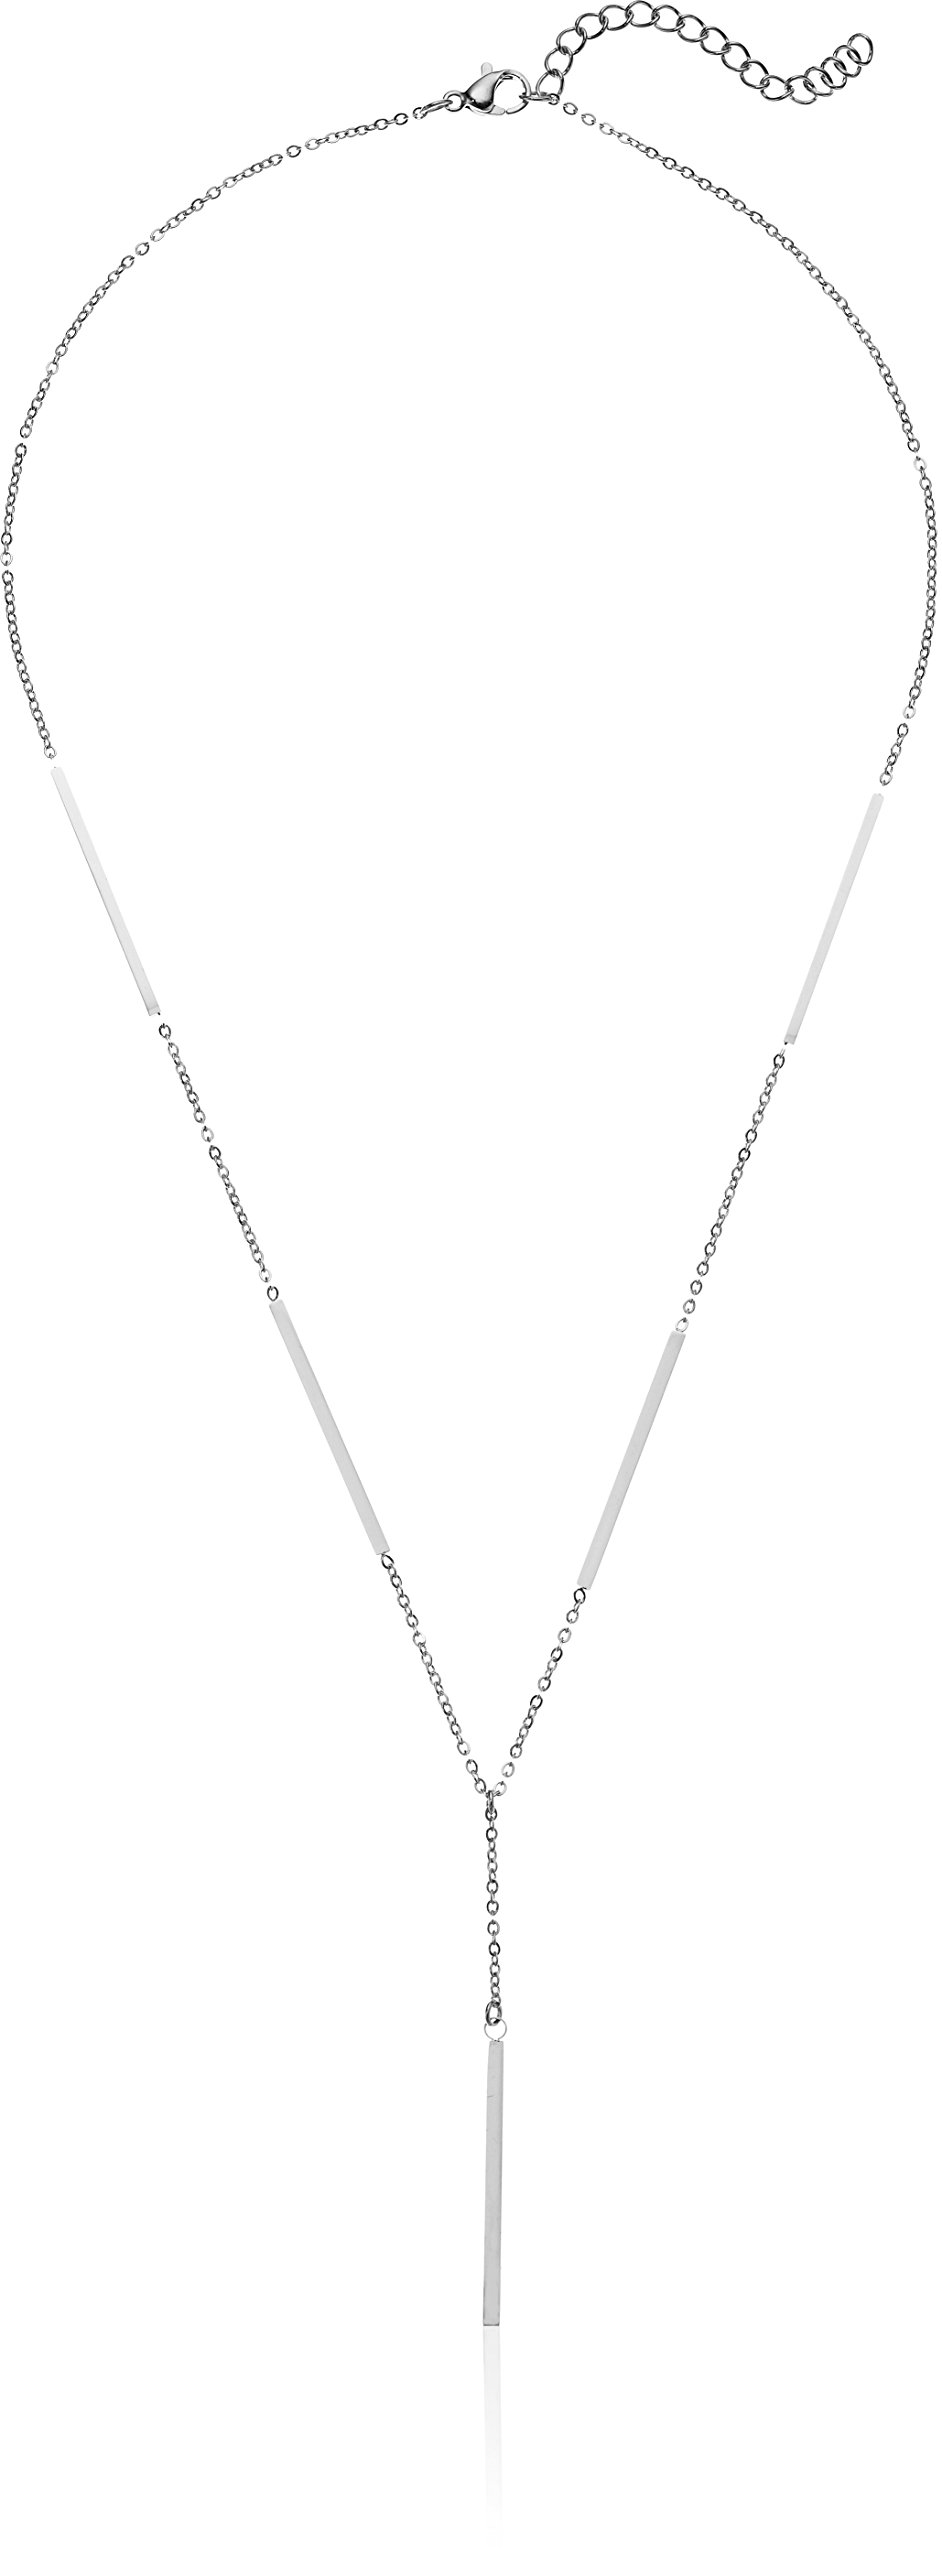 ELYA Jewelry Womens Polished Bar Stainless Steel Y Shaped Necklace, White, One Size